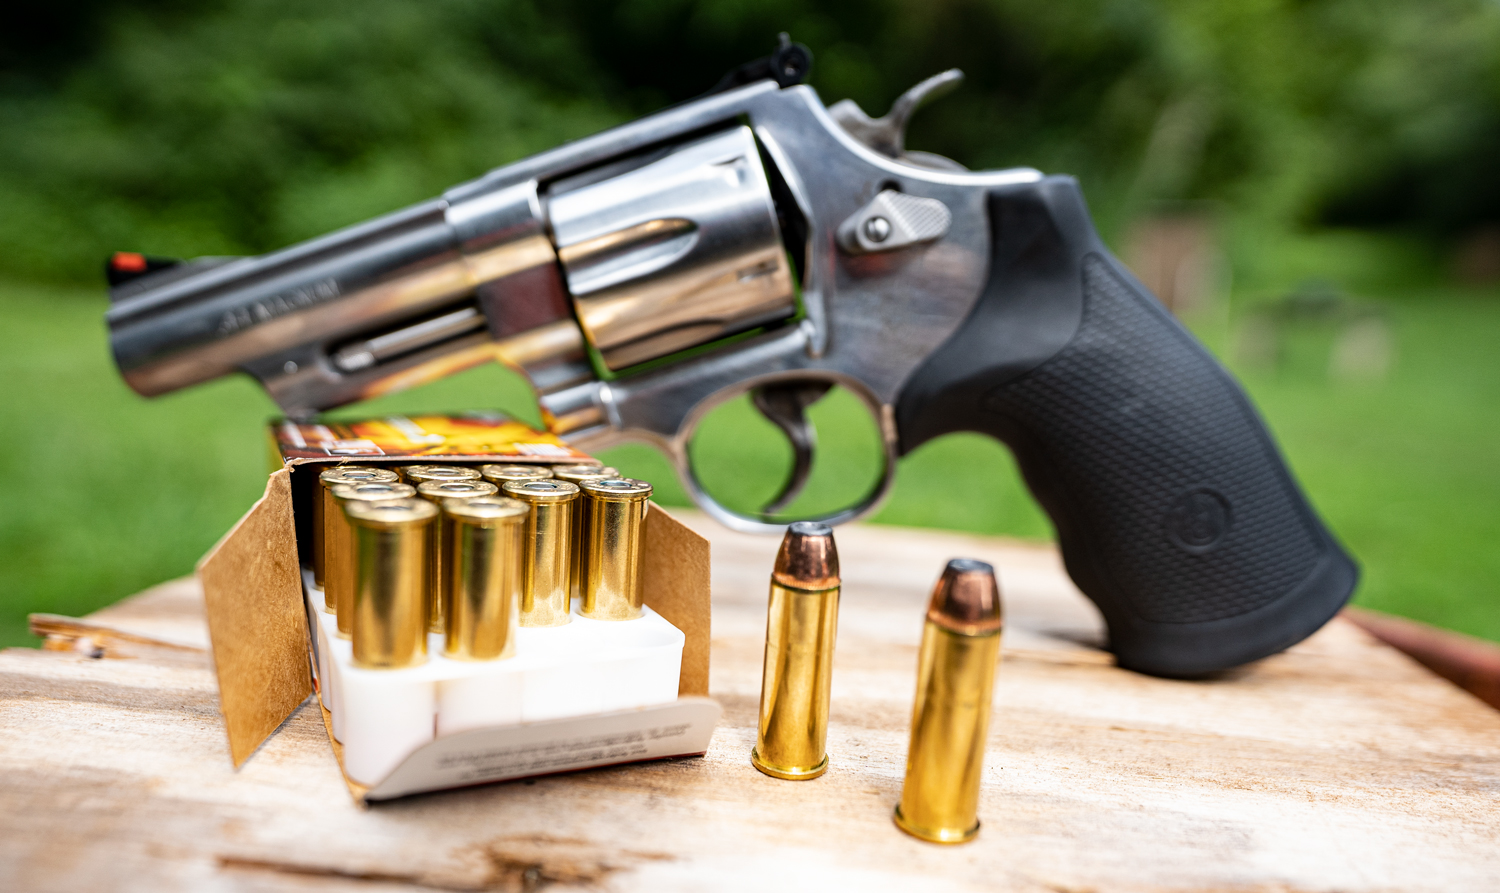 44 magnum revolver with ammunition at a shooting range